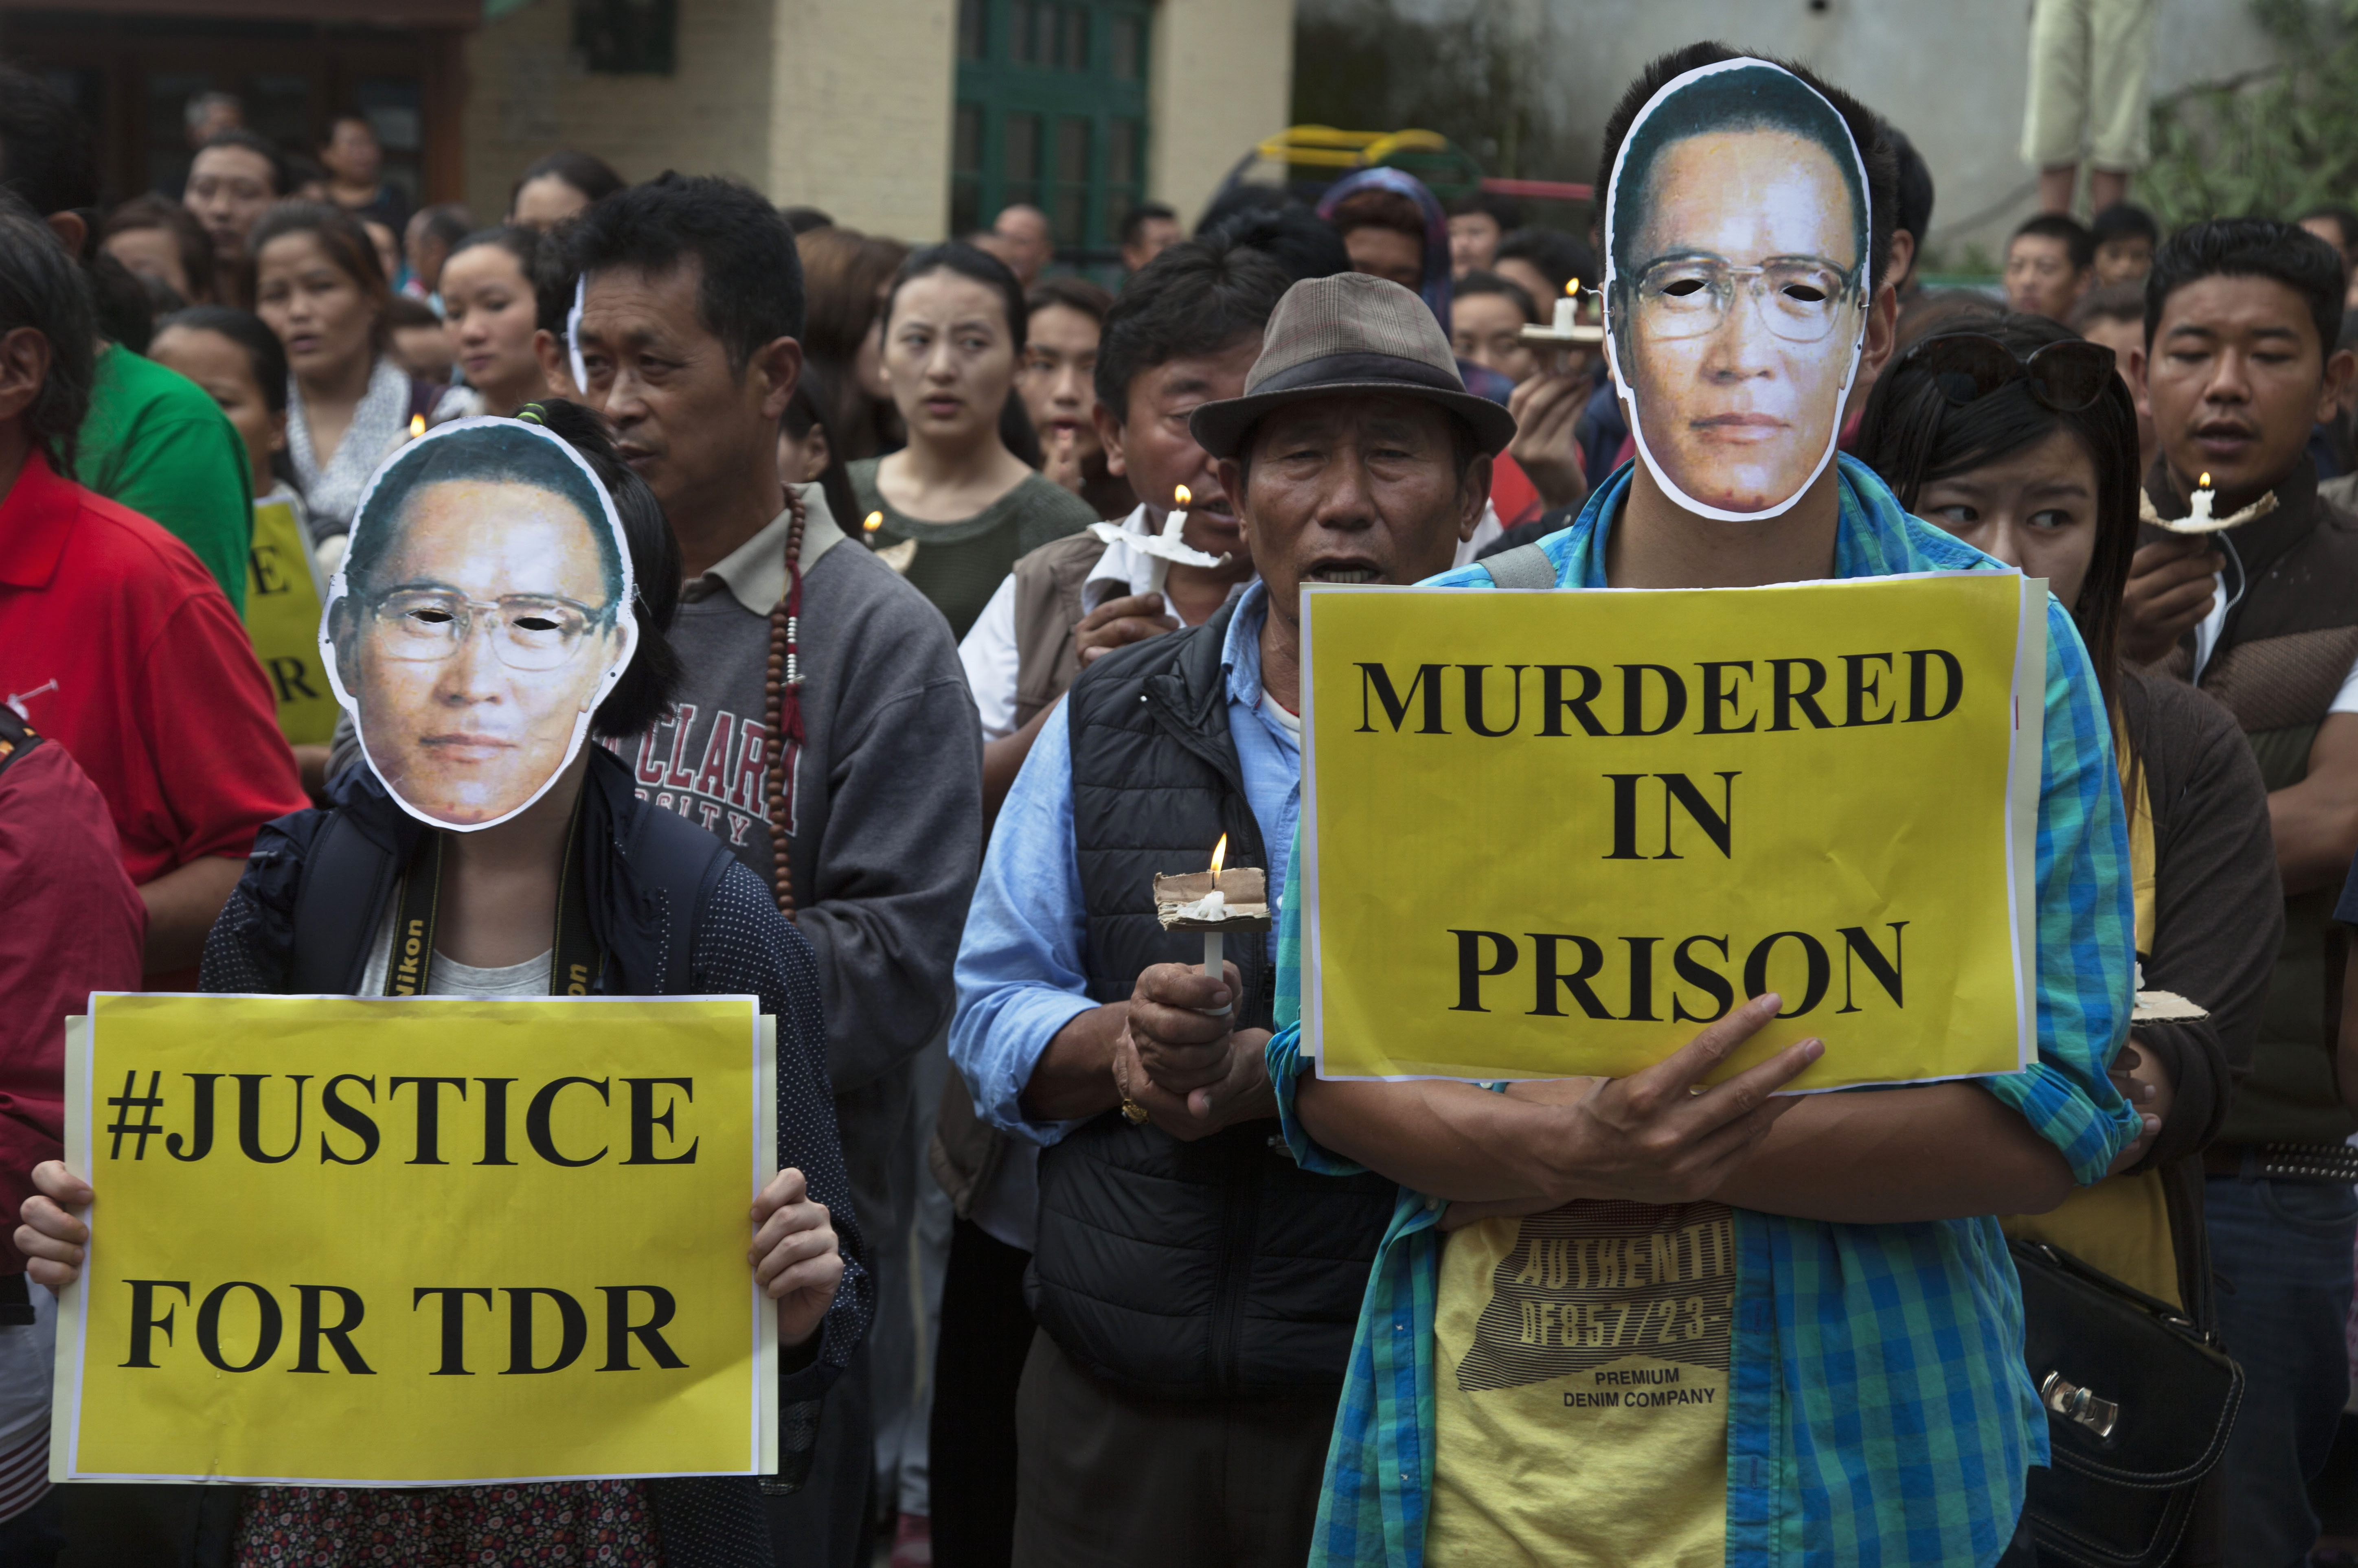 Exiled Tibetans carry placards as they participate in a candlelit vigil to remember Tibetan lama Tenzin Delek Rinpoche in Dharamsala, India, on July 13, 2015